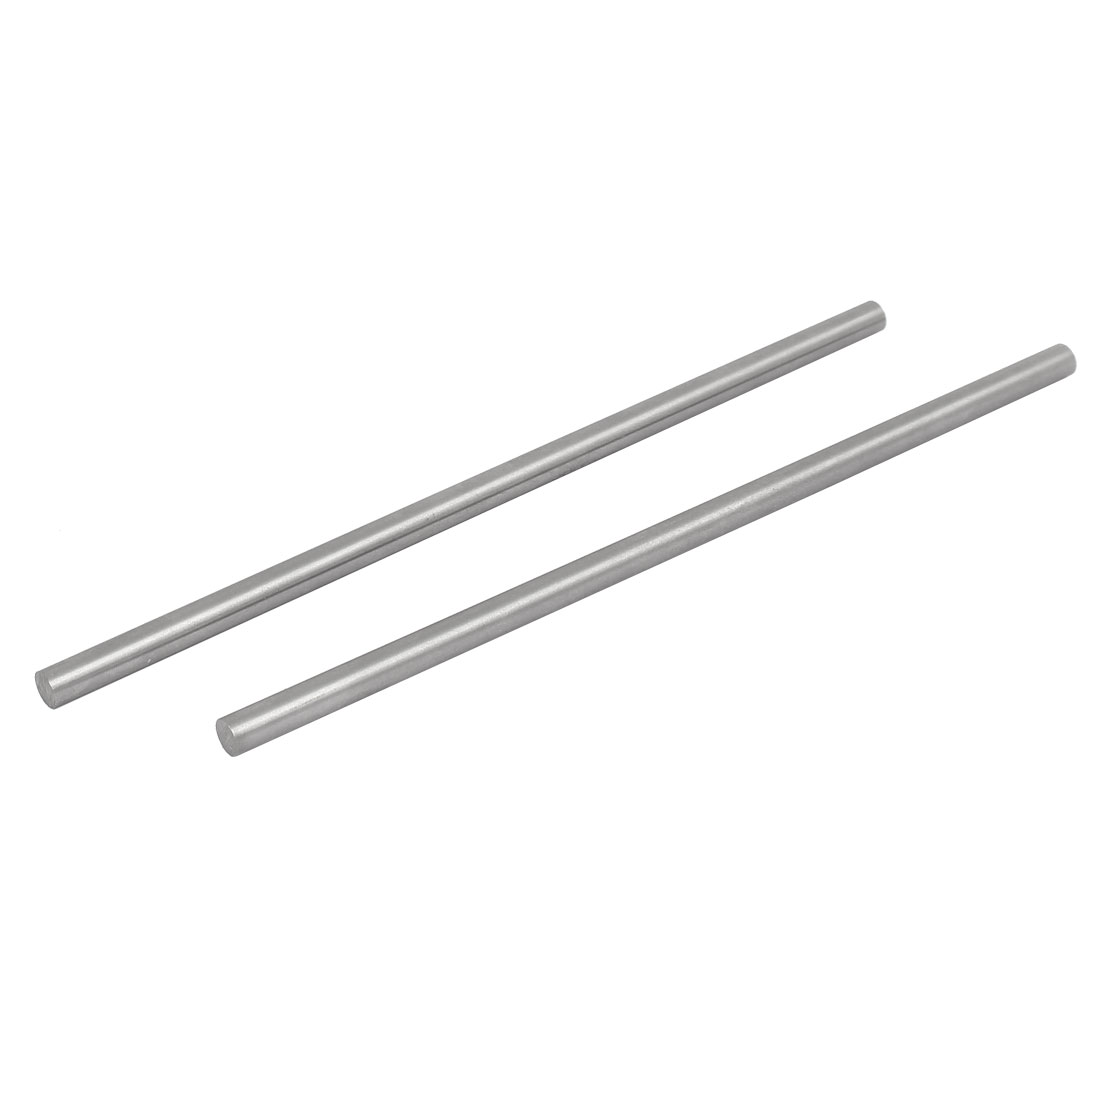 7mm Dia 200mm Length HSS Round Shaft Rod Bar Lathe Tools Gray 2pcs